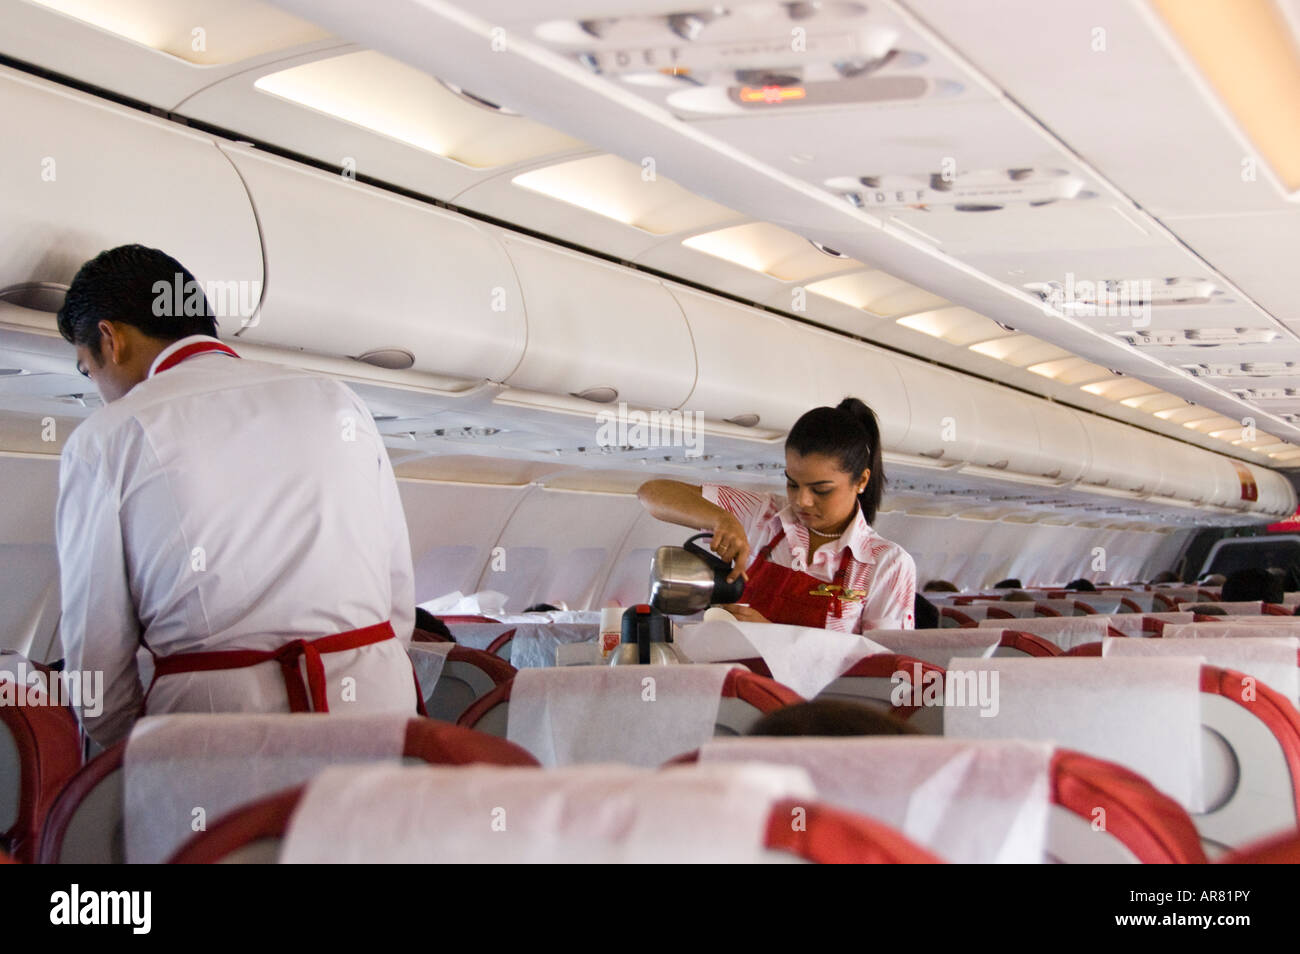 Air hostess serves coffee on a flight in India - Stock Image